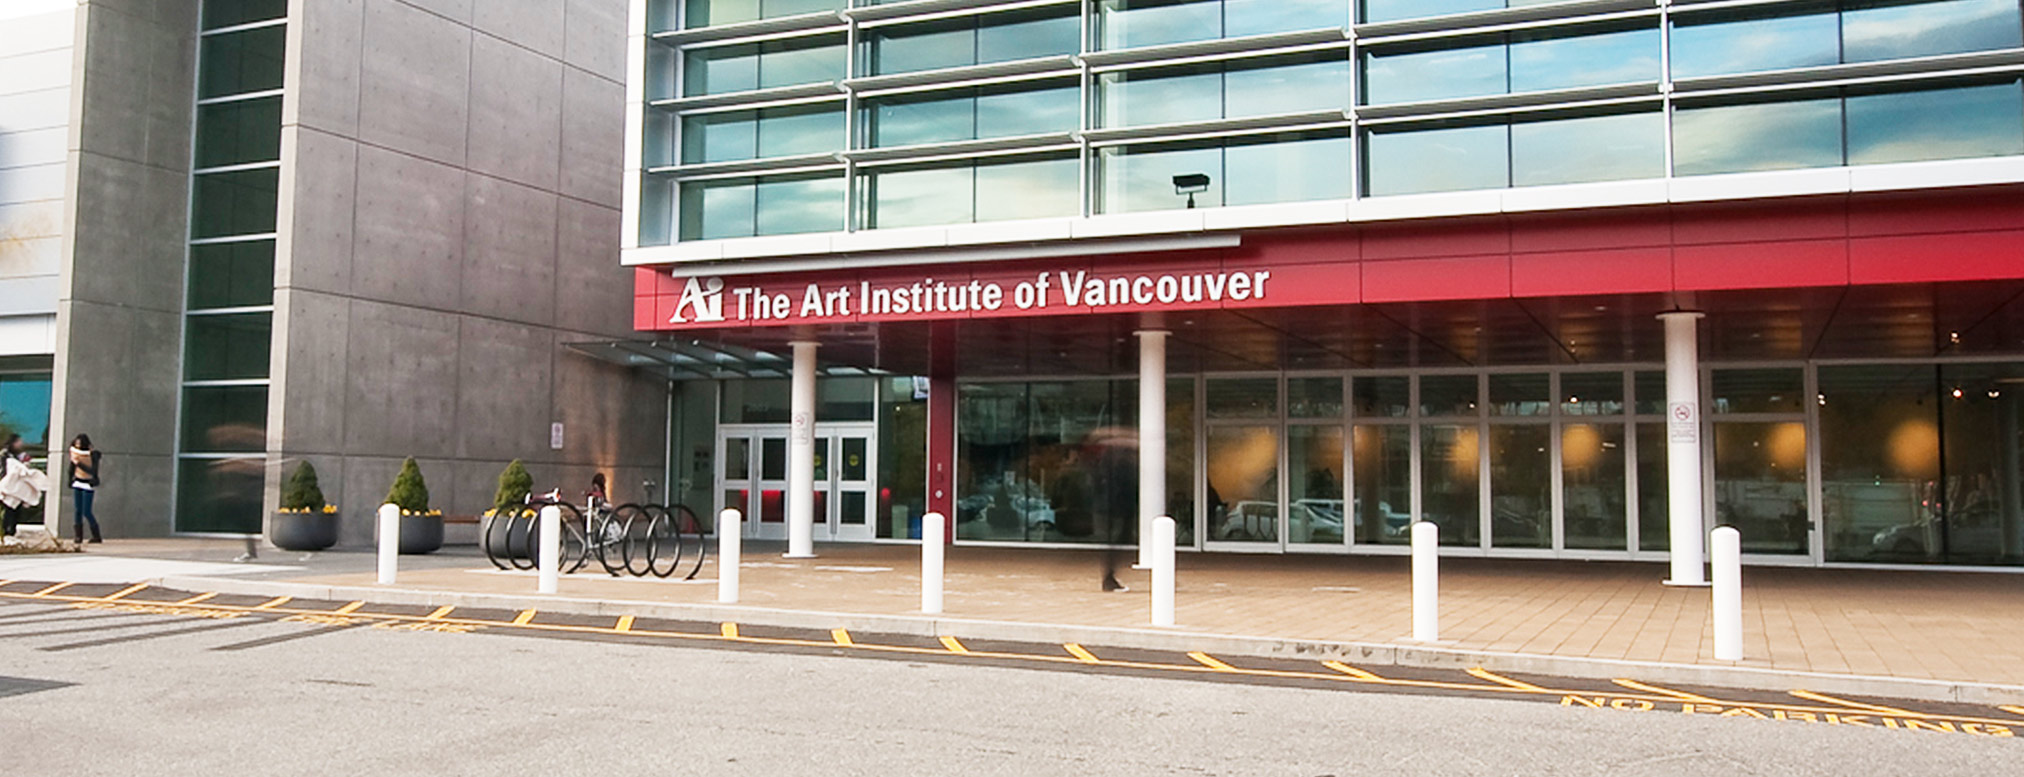 The Art Institute Of Vancouver British Columbia